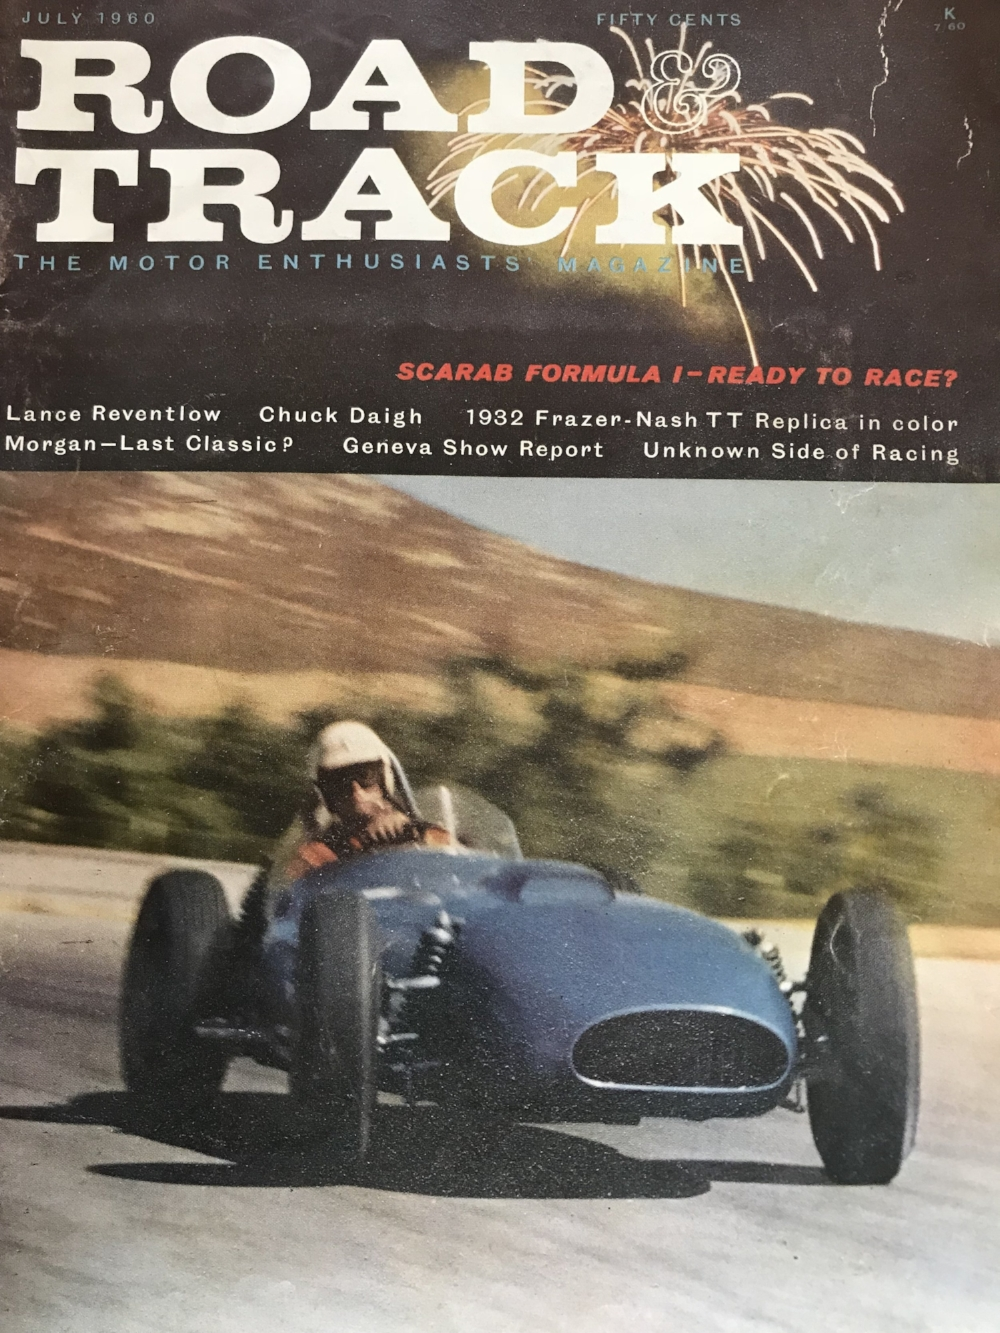 Road & Track published a detailed story on Lance Reventlow many years ago... fortunately the issue was still available on eBay. -